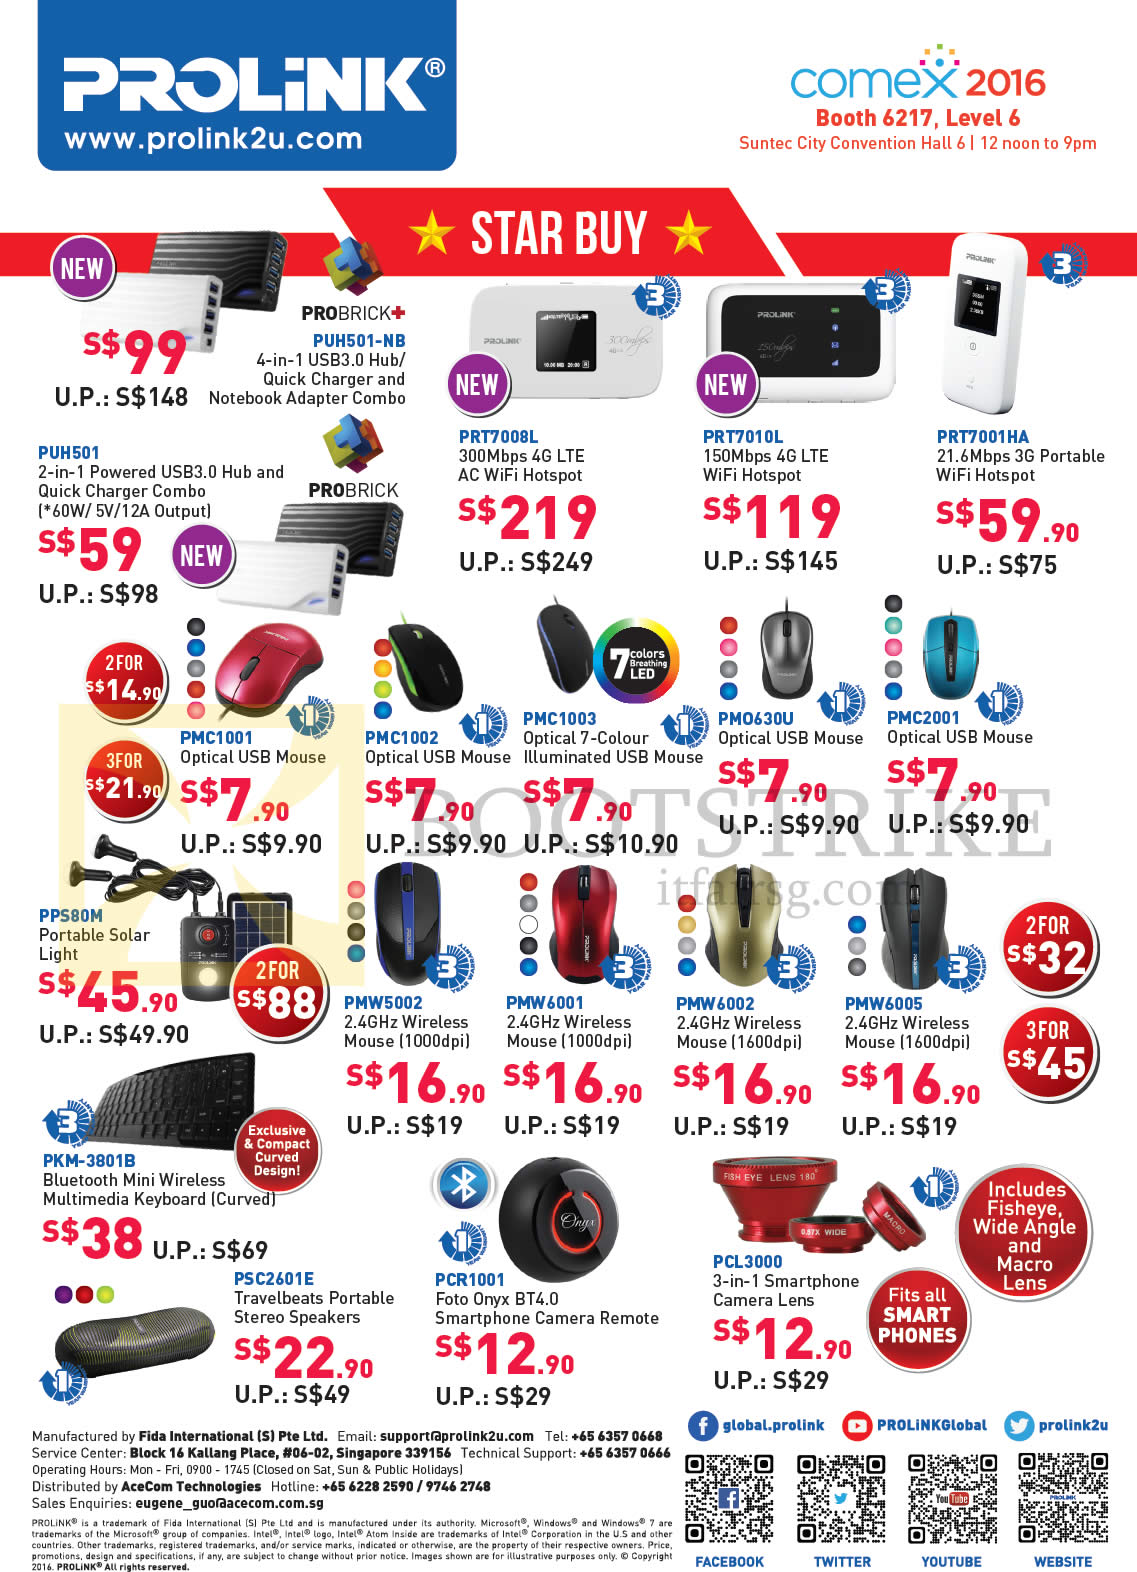 COMEX 2016 price list image brochure of Prolink Accessories Star Buys Wifi Hotspot, Mouse, Portable Solar Light, Keyboards, Camera Remote, Camera Lens